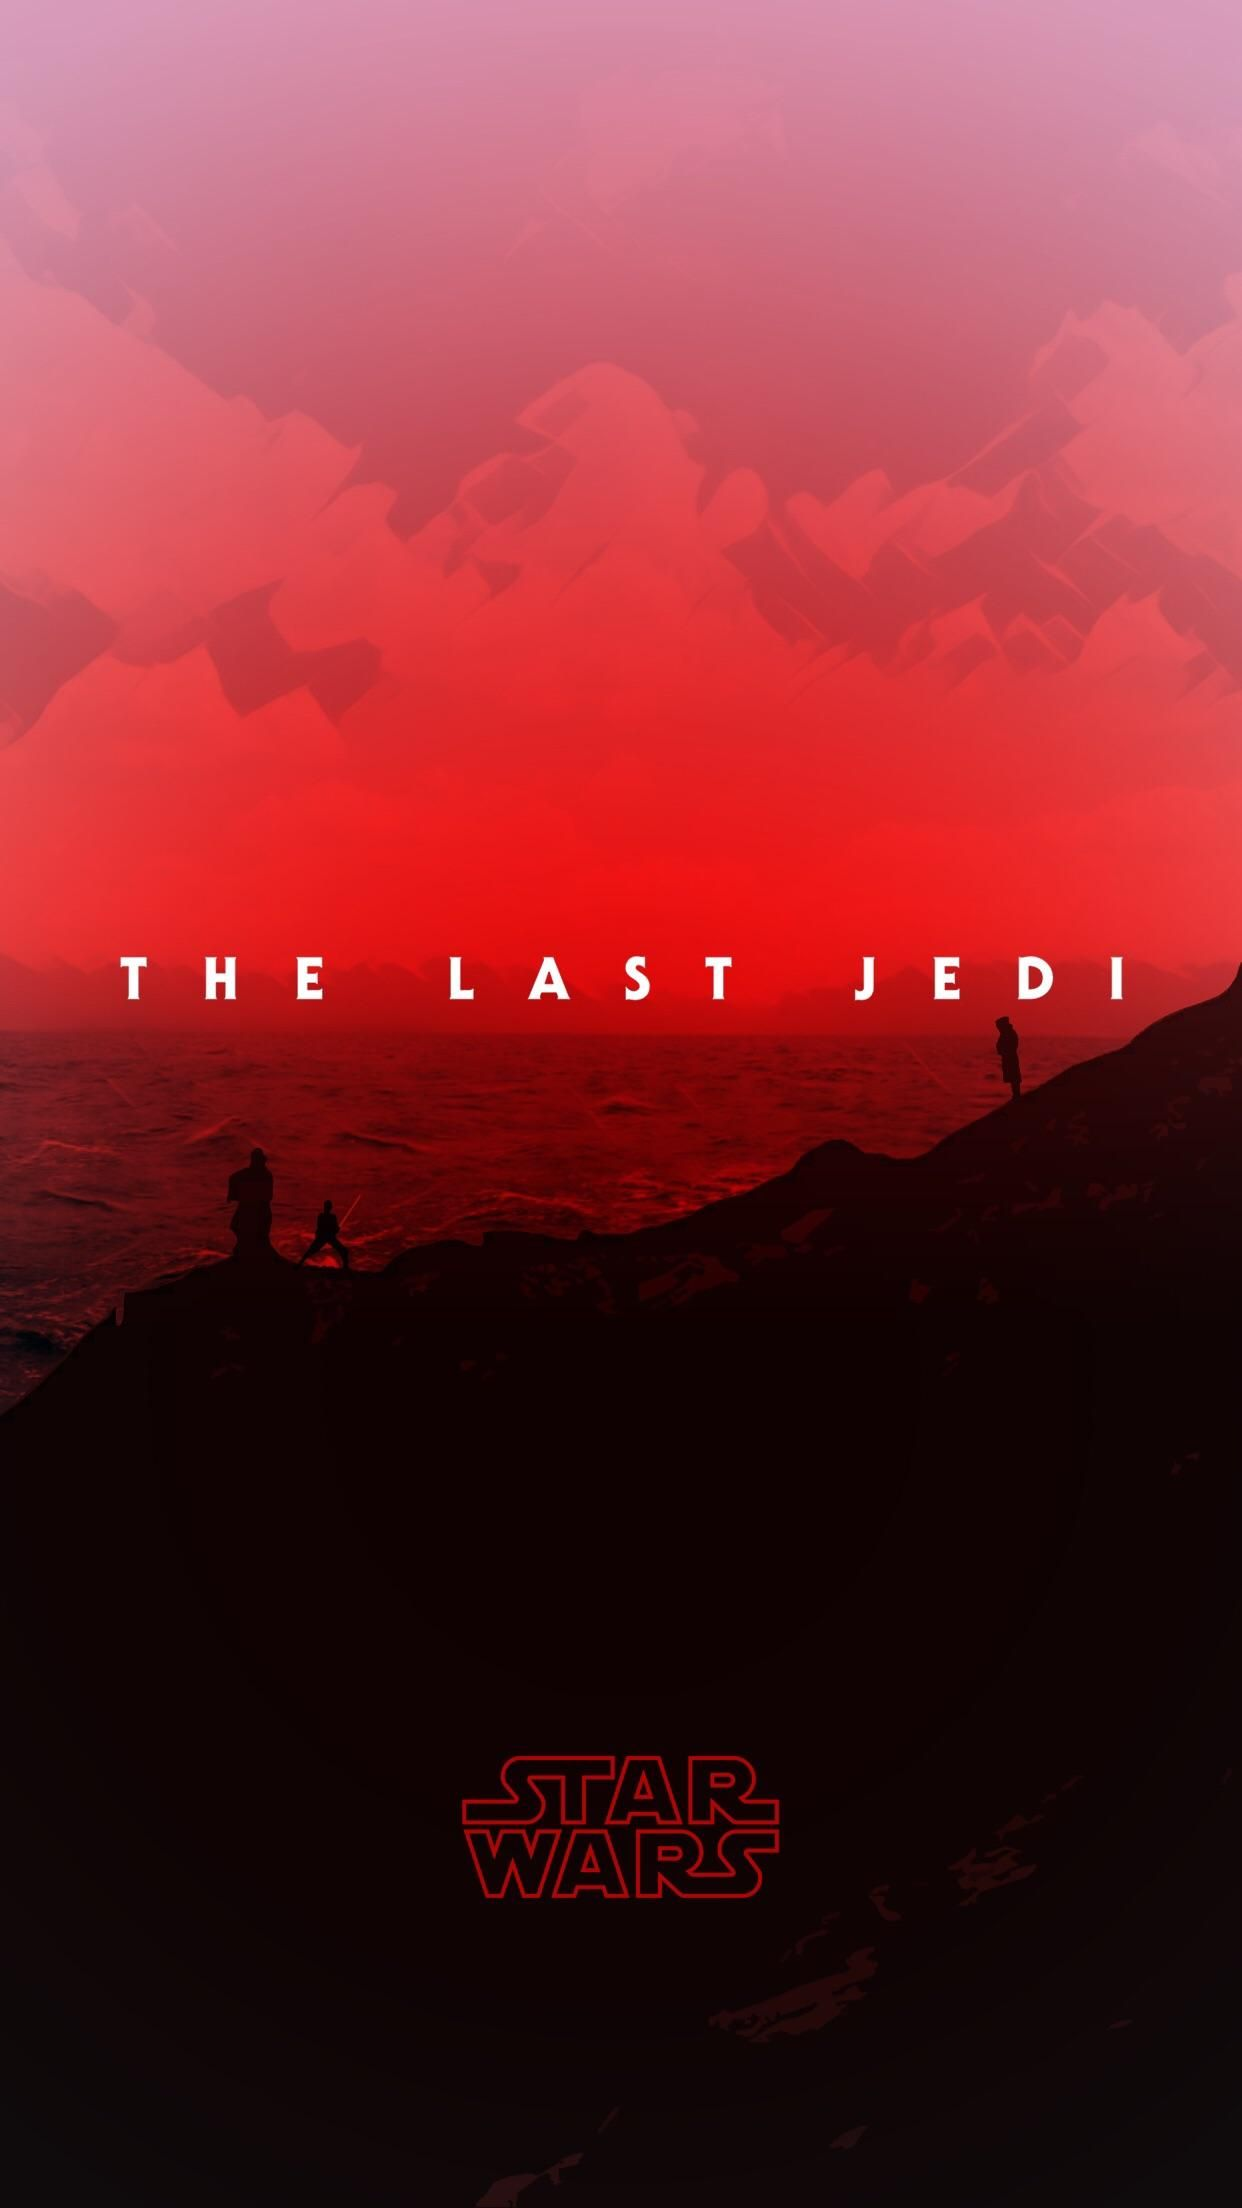 Star Wars The Last Jedi 2017 Hd Wallpaper From Gallsource Com